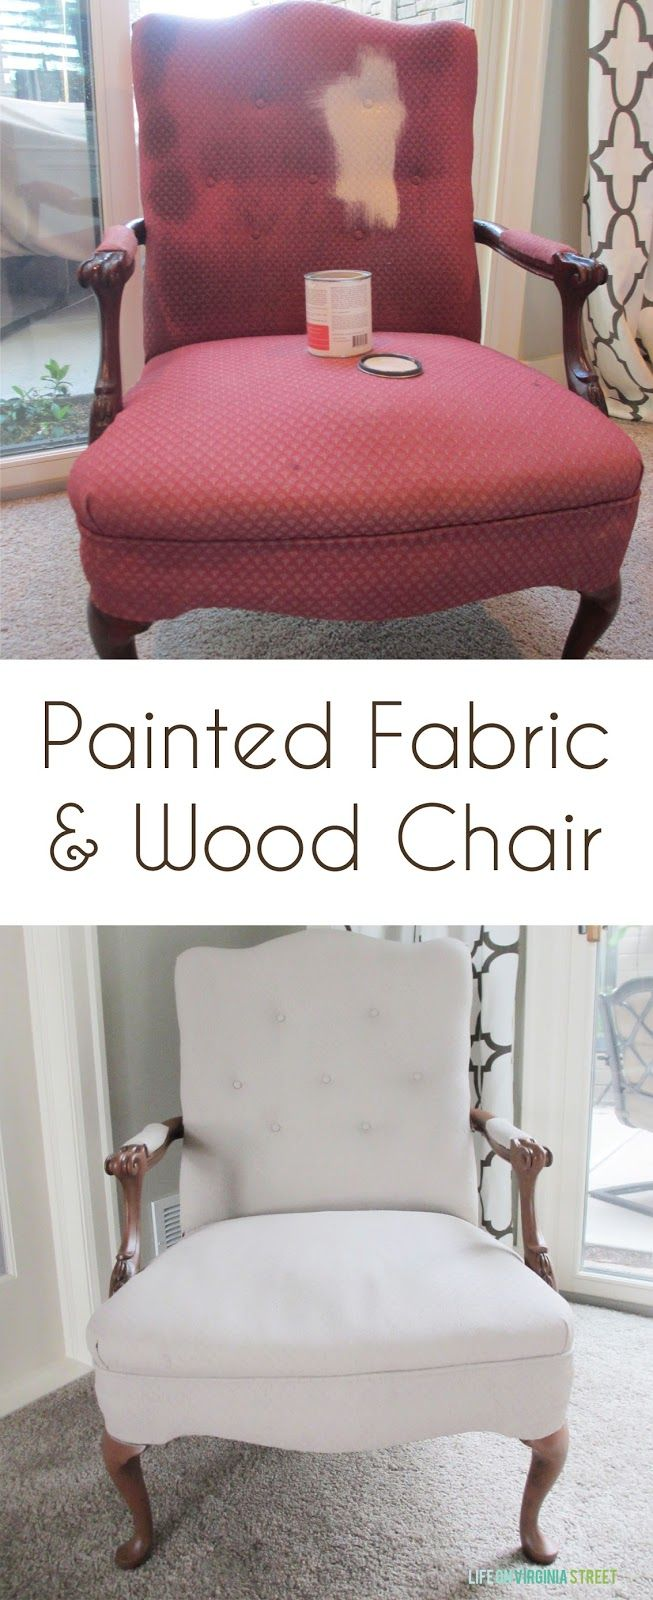 Painted fabric and wood chair using chalk-based paint and antiquing wax - I wonder what the fabric feels once dry